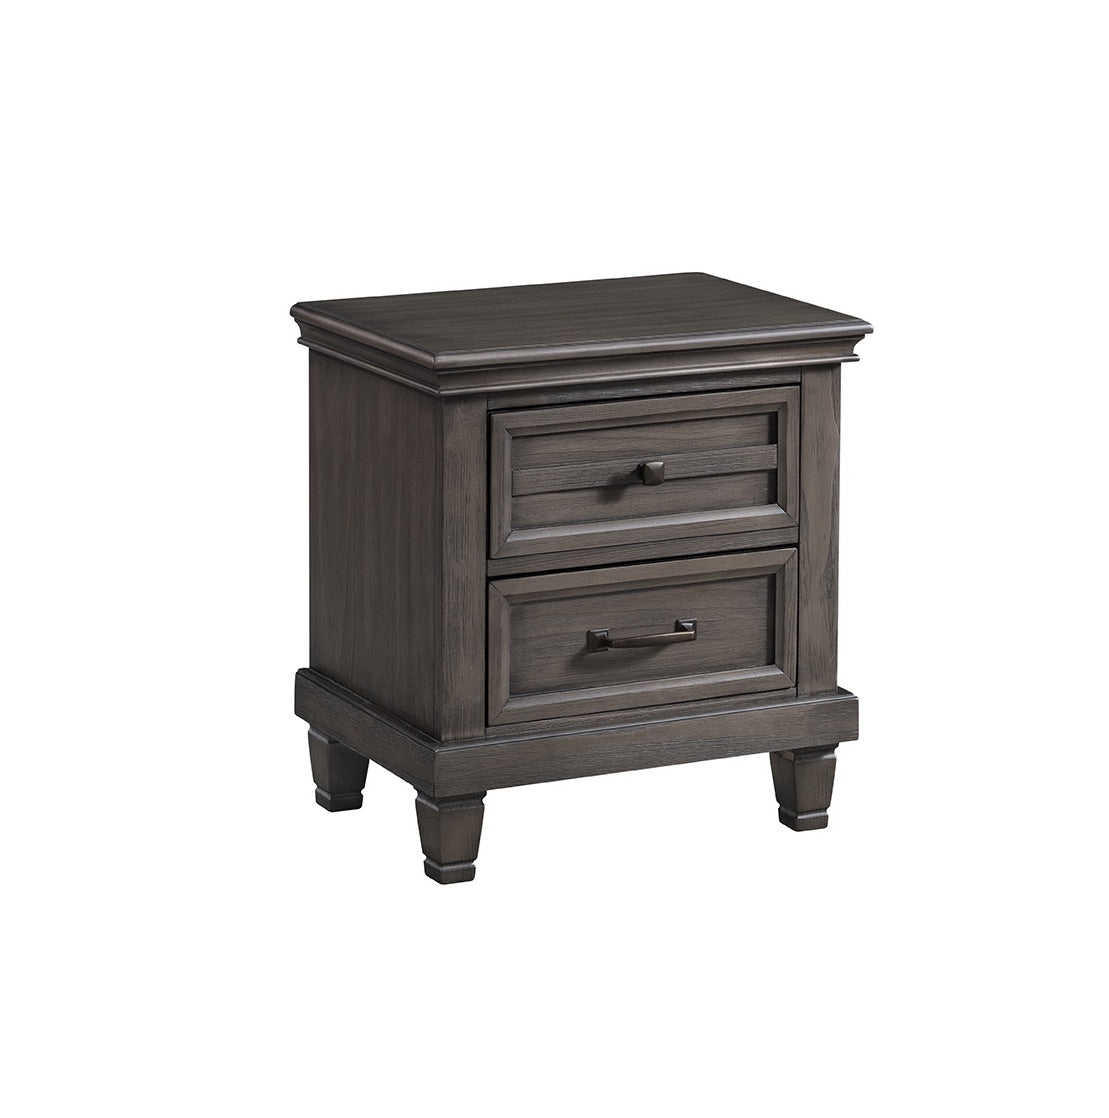 Stella Furniture Riverton Collection